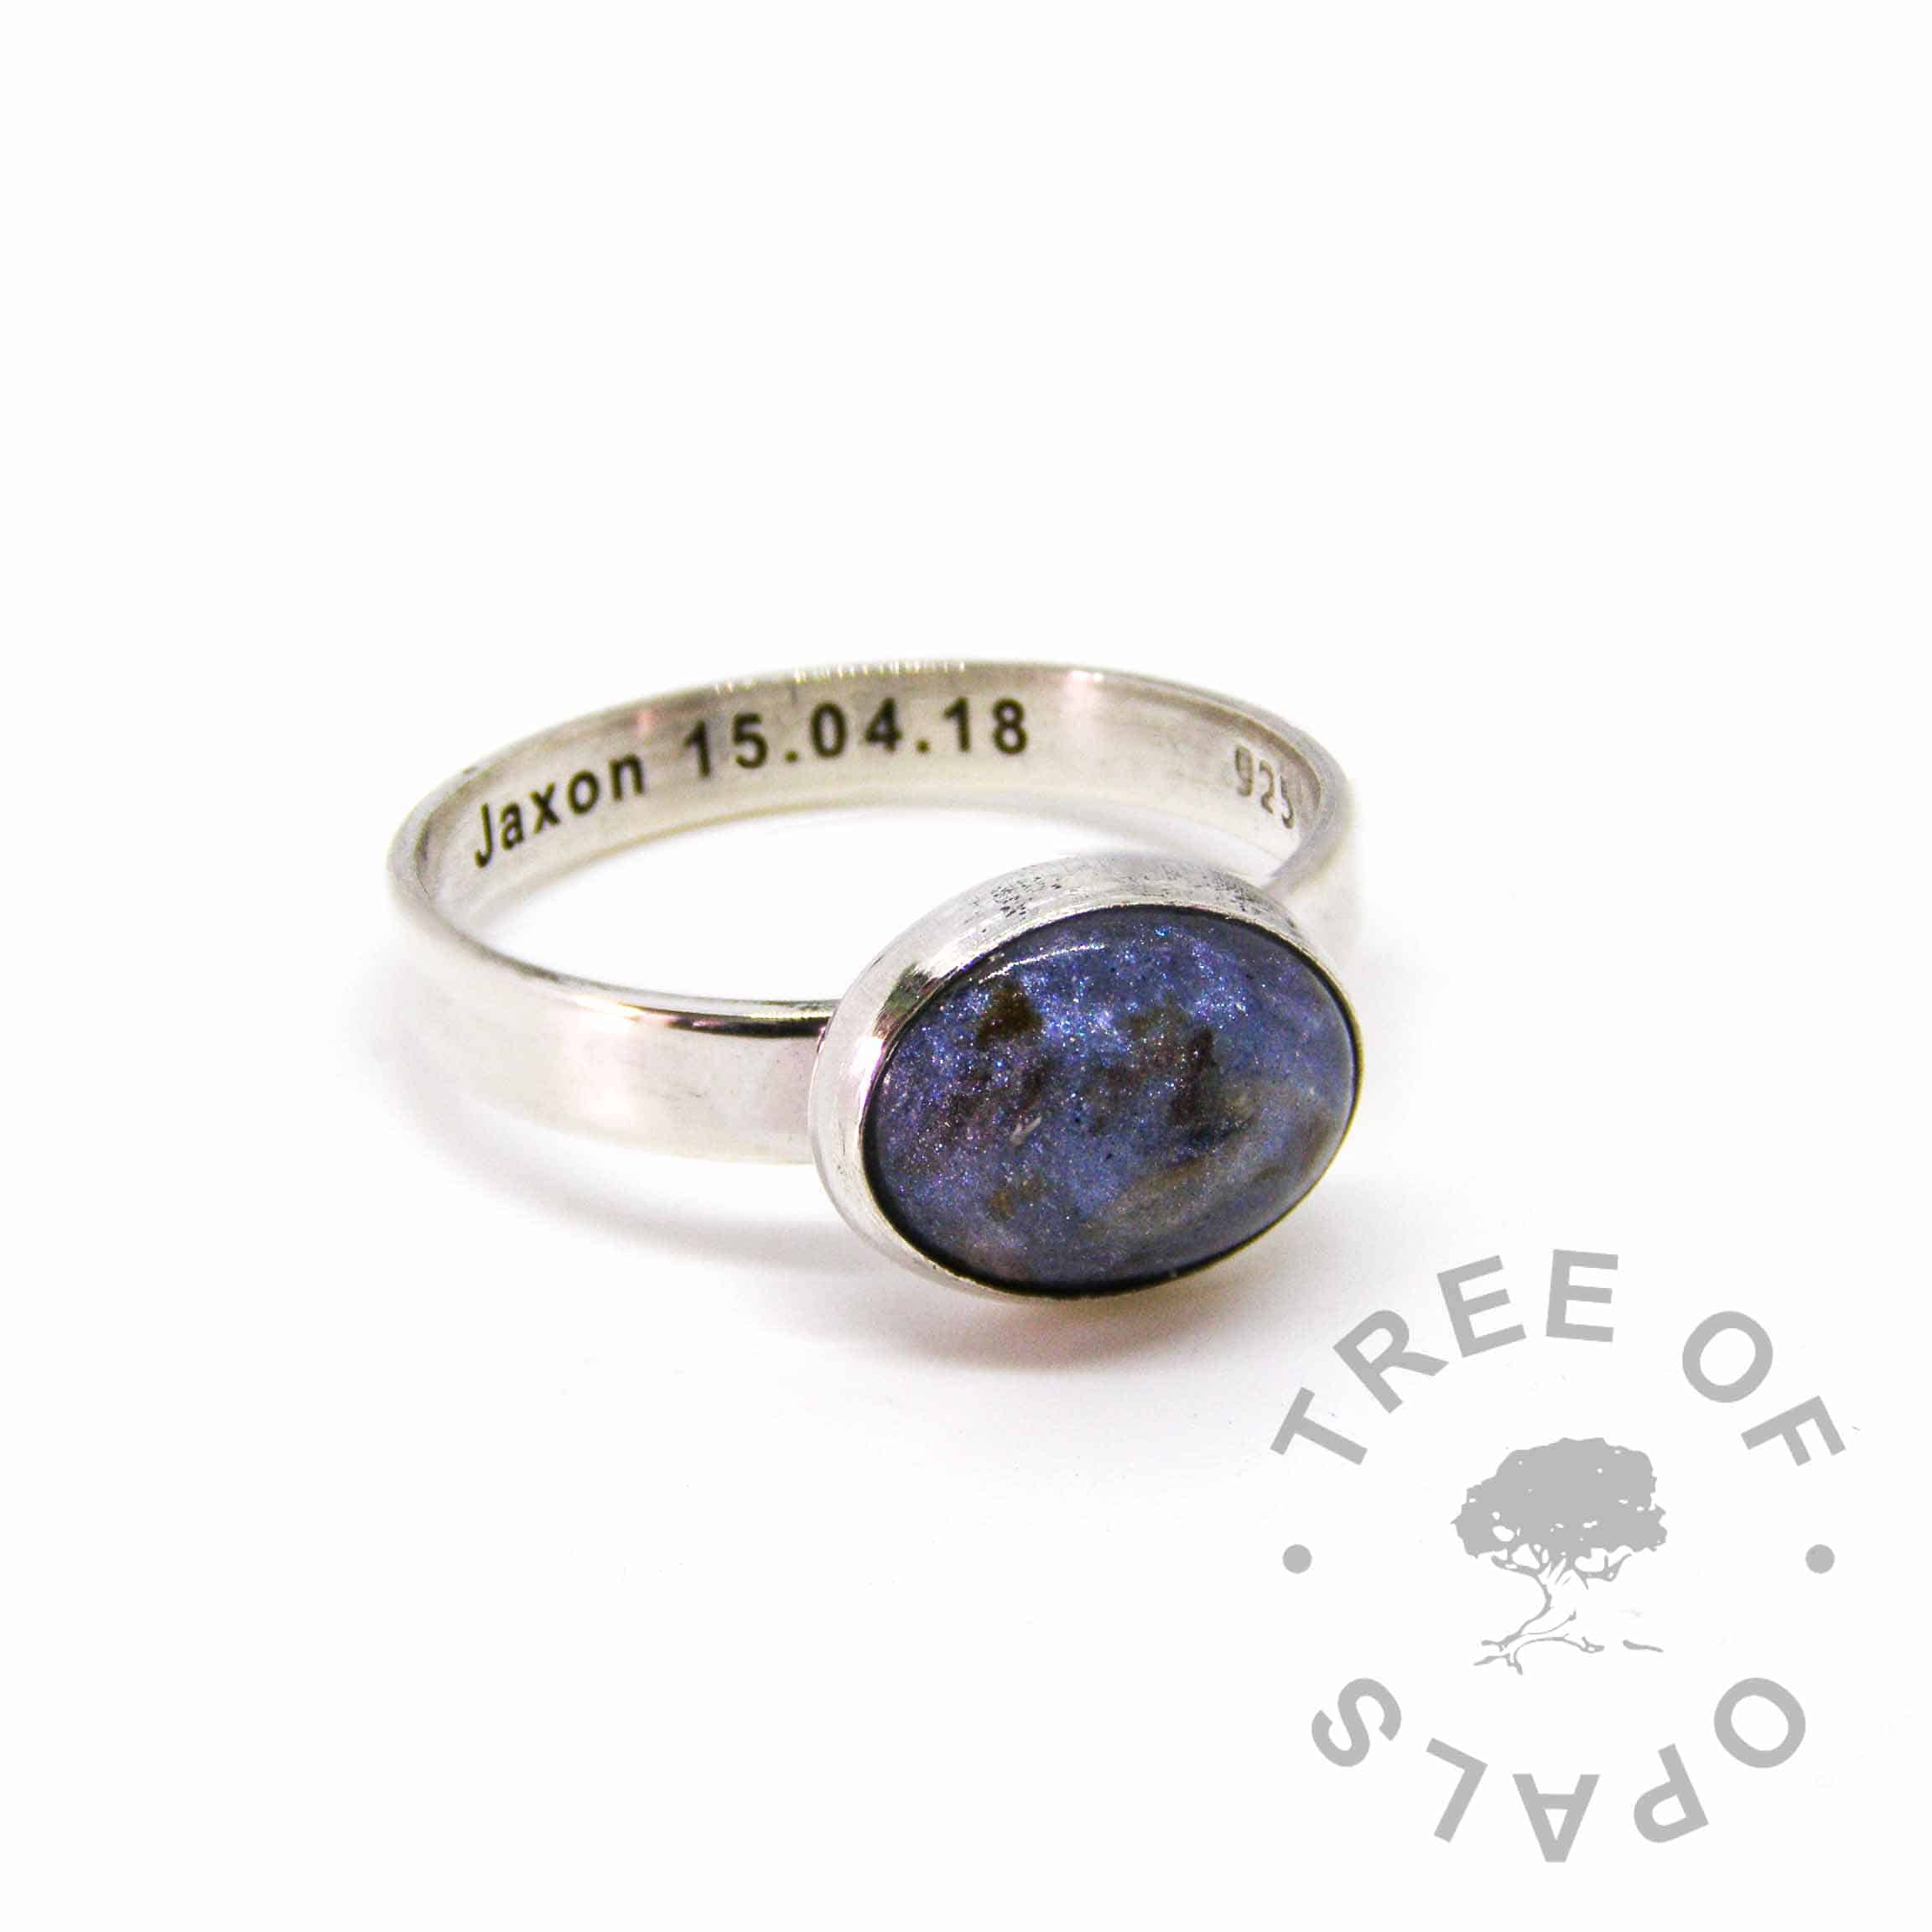 blue umbilical cord ring, 3mm shiny band engraved with a name and date of birth. Handmade in solid sterling silver